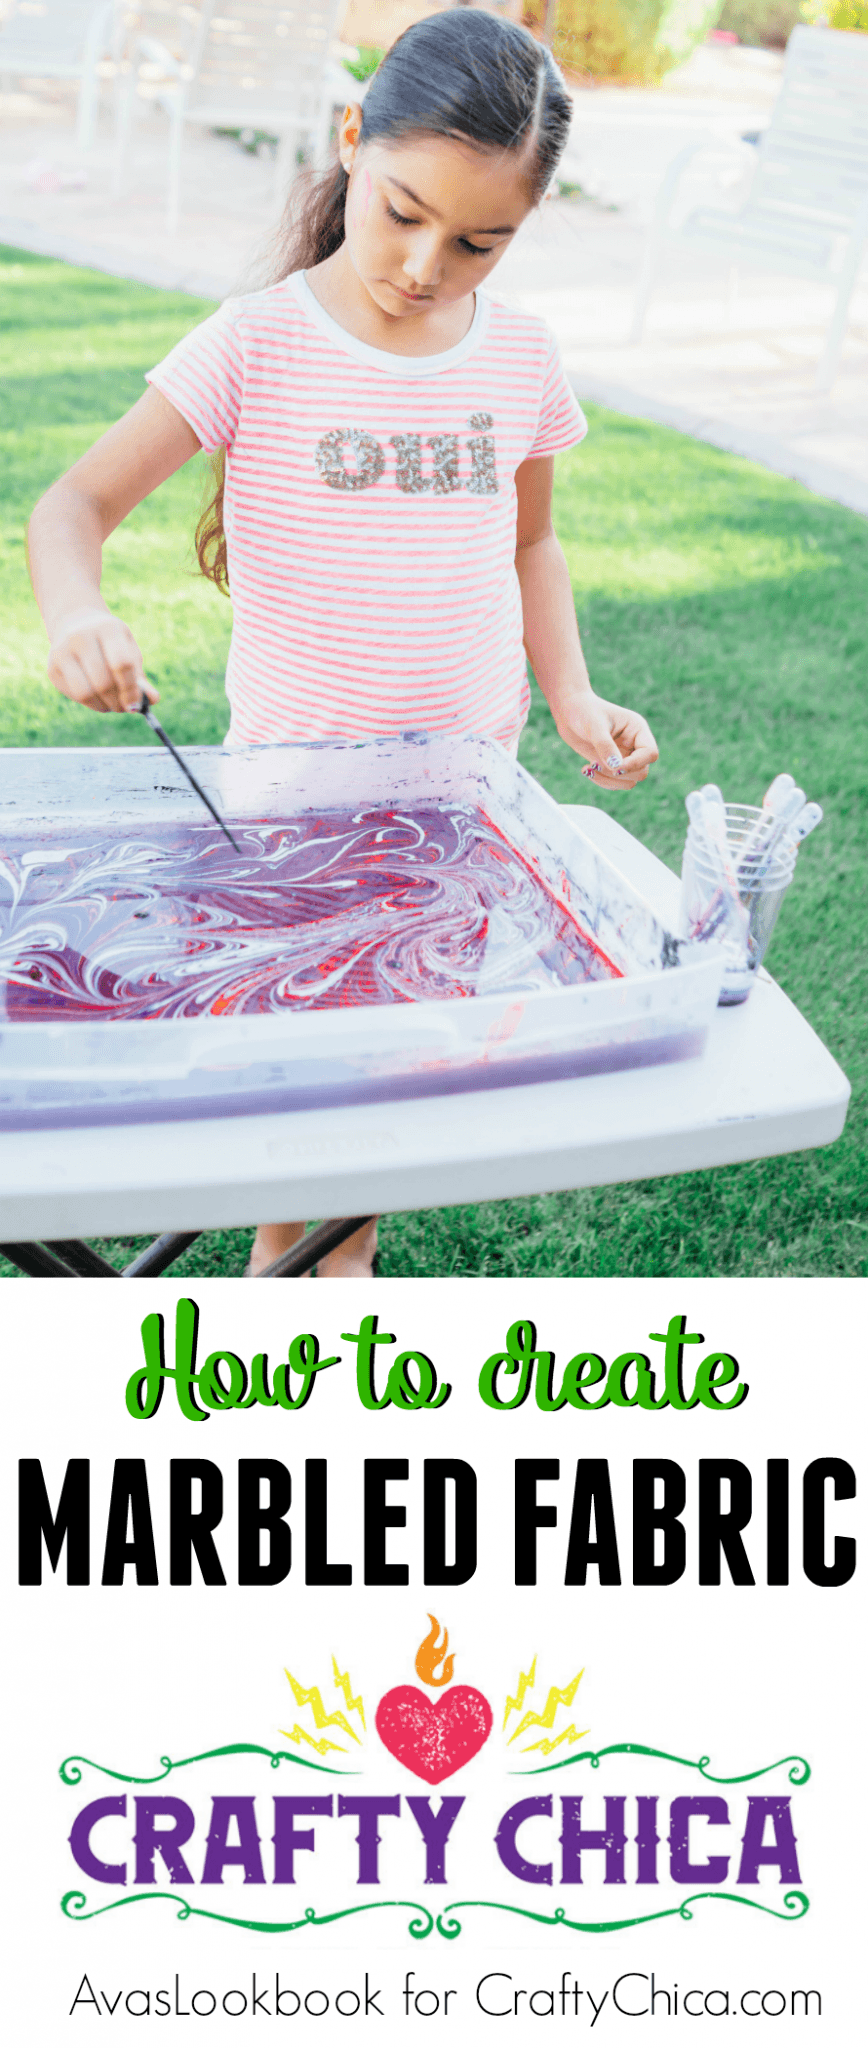 How to create marbled fabric.